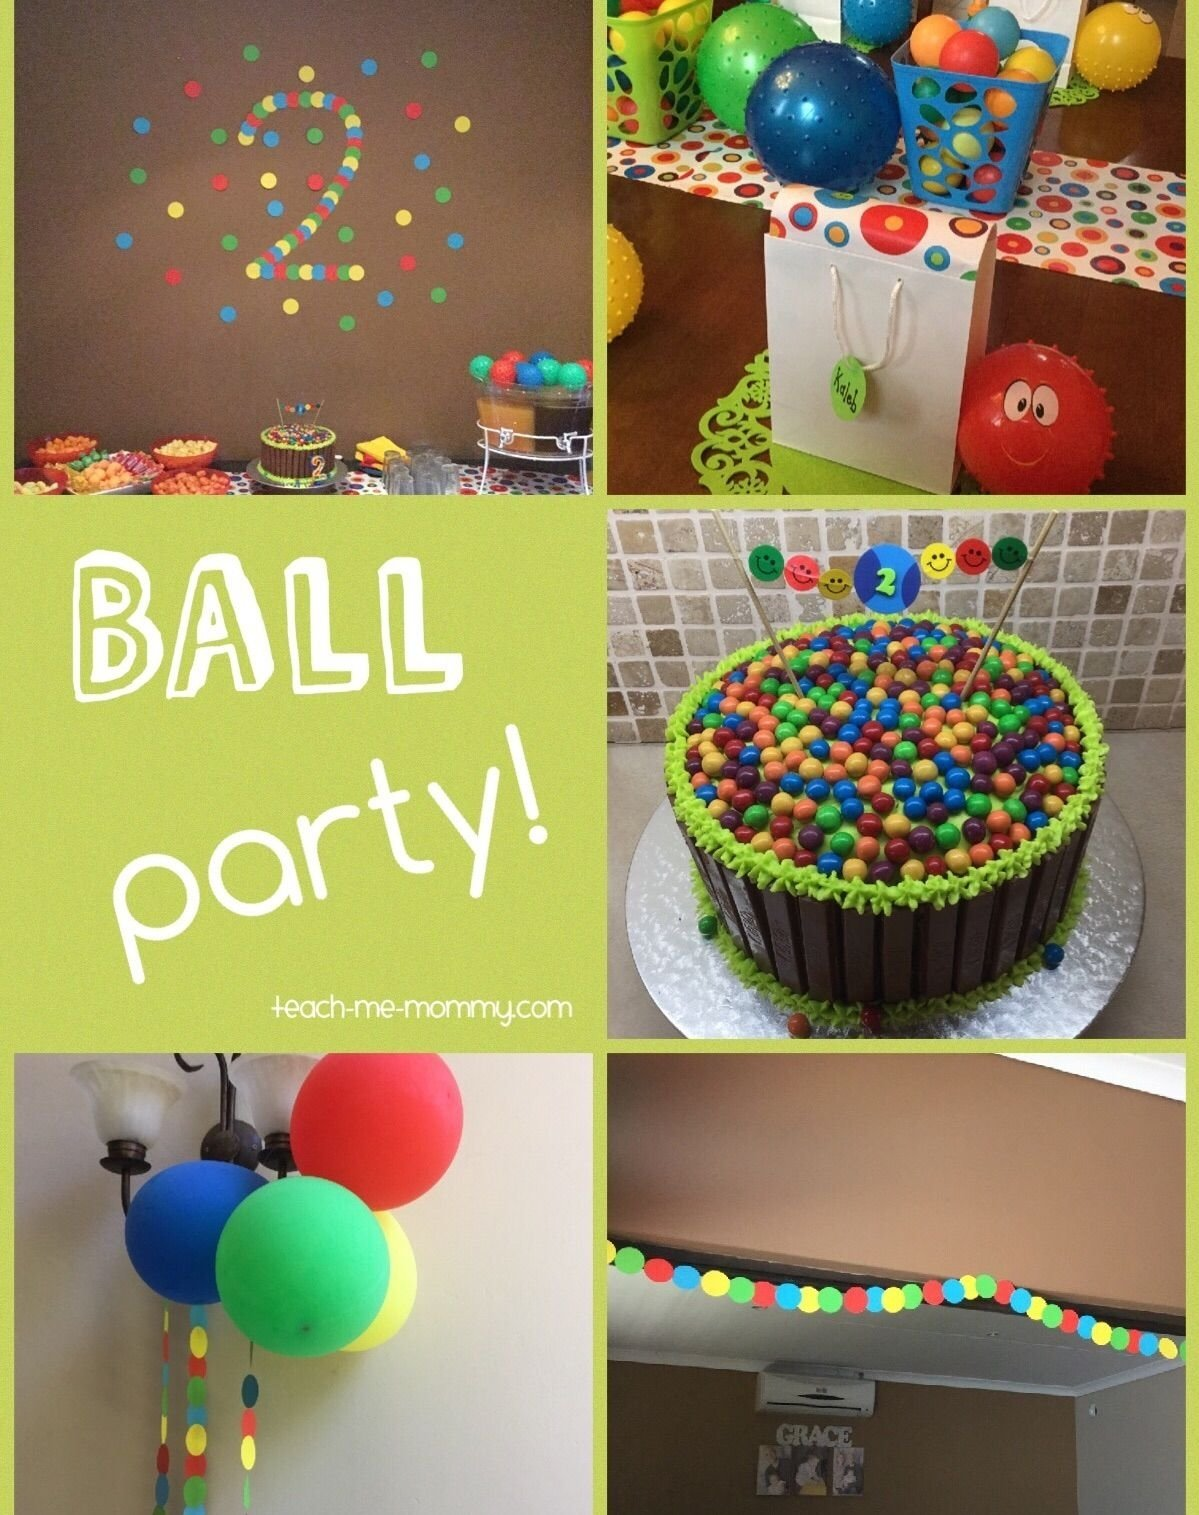 10 Best Birthday Party Ideas For 2 Year Old ball themed party for a 2 year old themed parties birthdays and 22